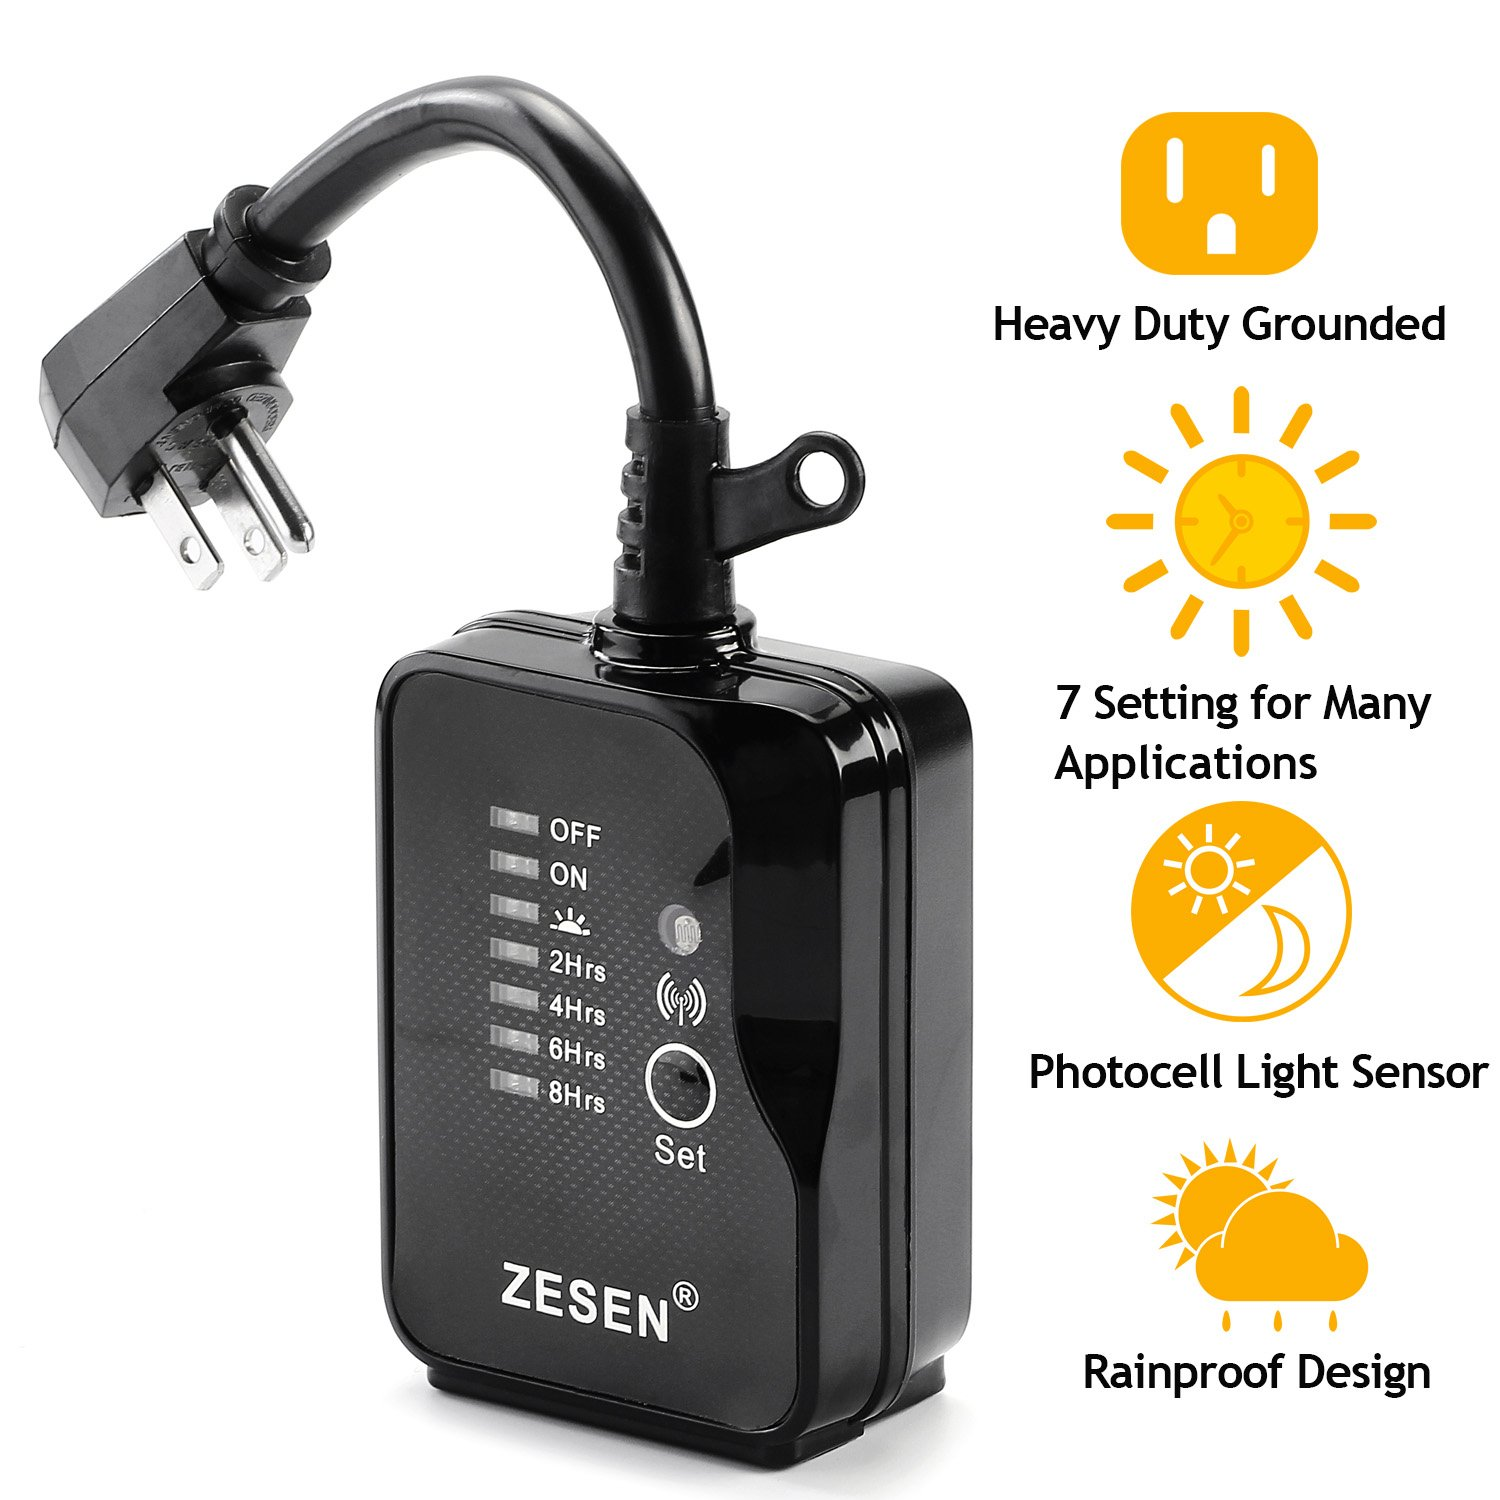 Zesen Remote Control Outlet Timer Switch Waterproof For Household Appliances,